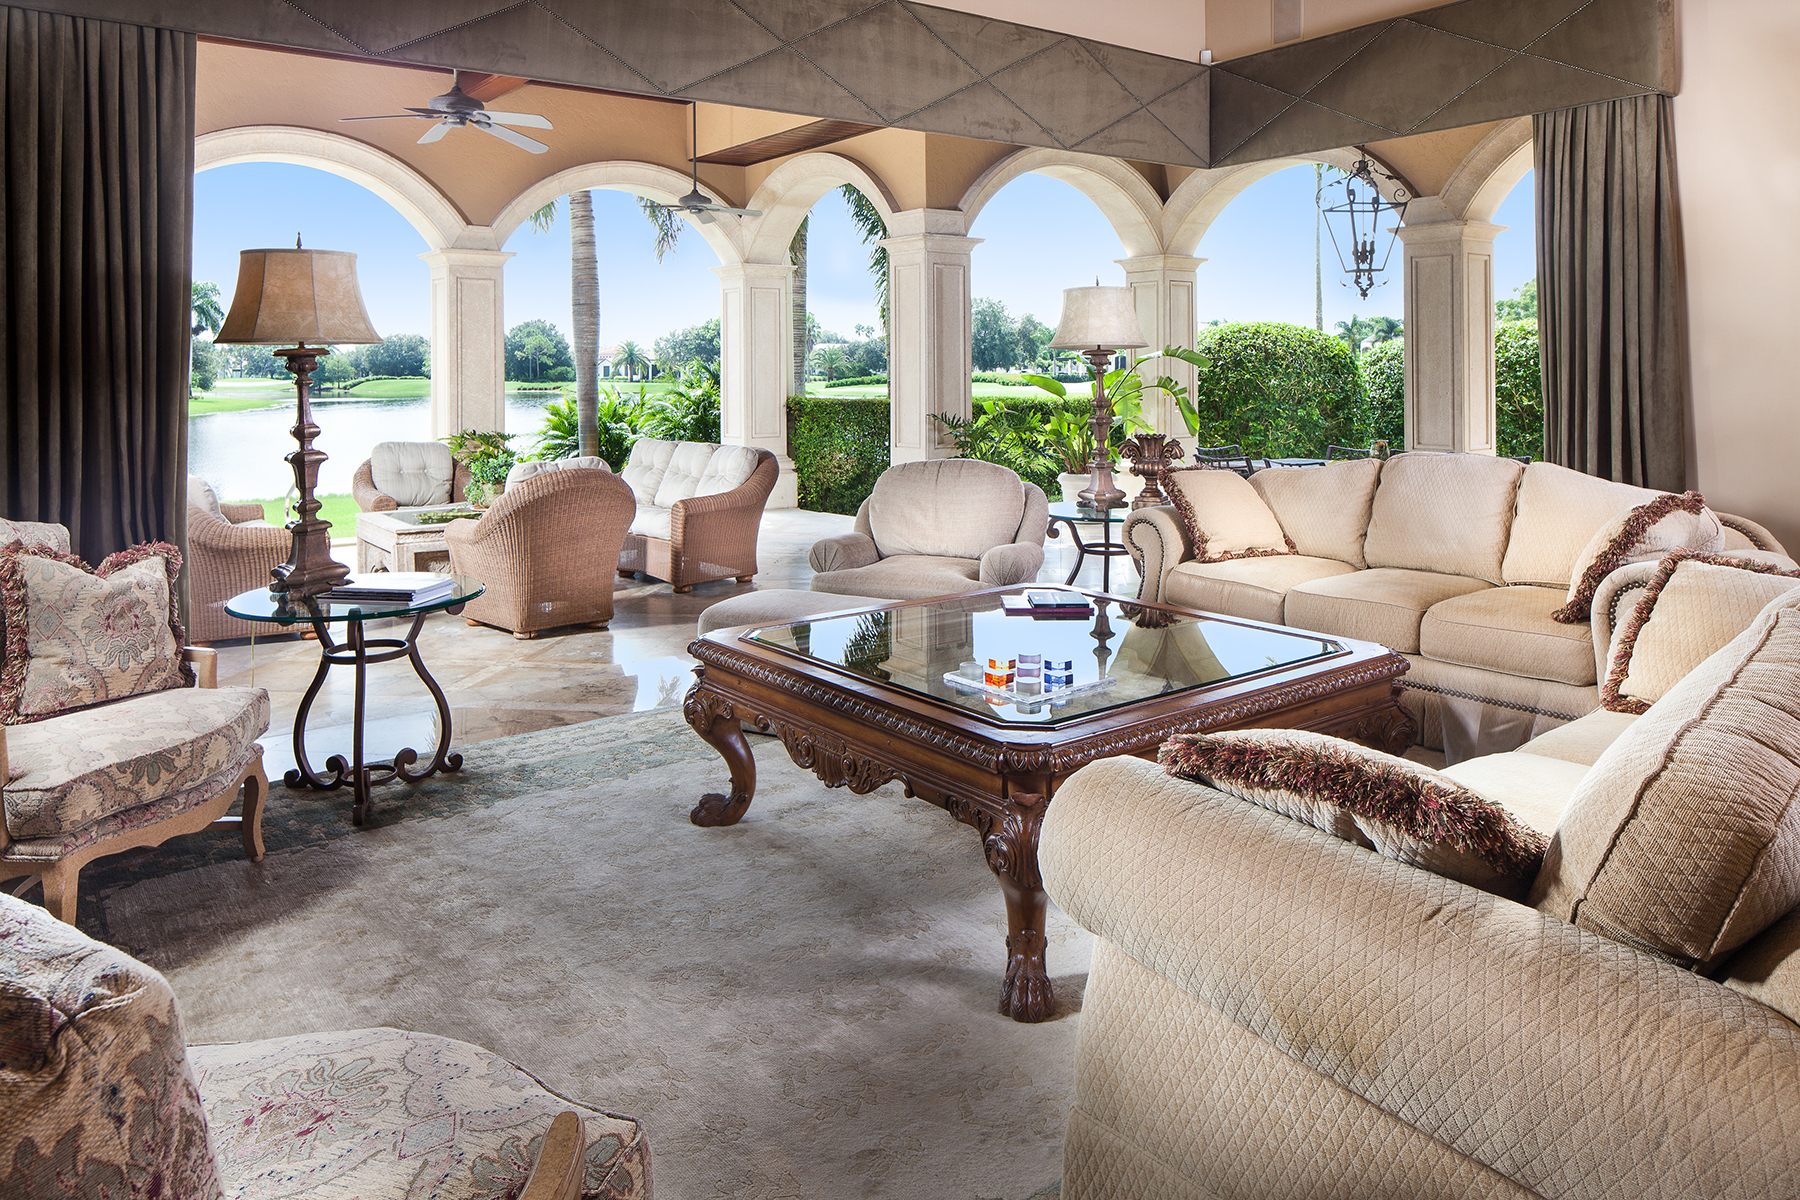 Additional photo for property listing at QUAIL WEST 28921  Cavell,  Naples, Florida 34119 United States